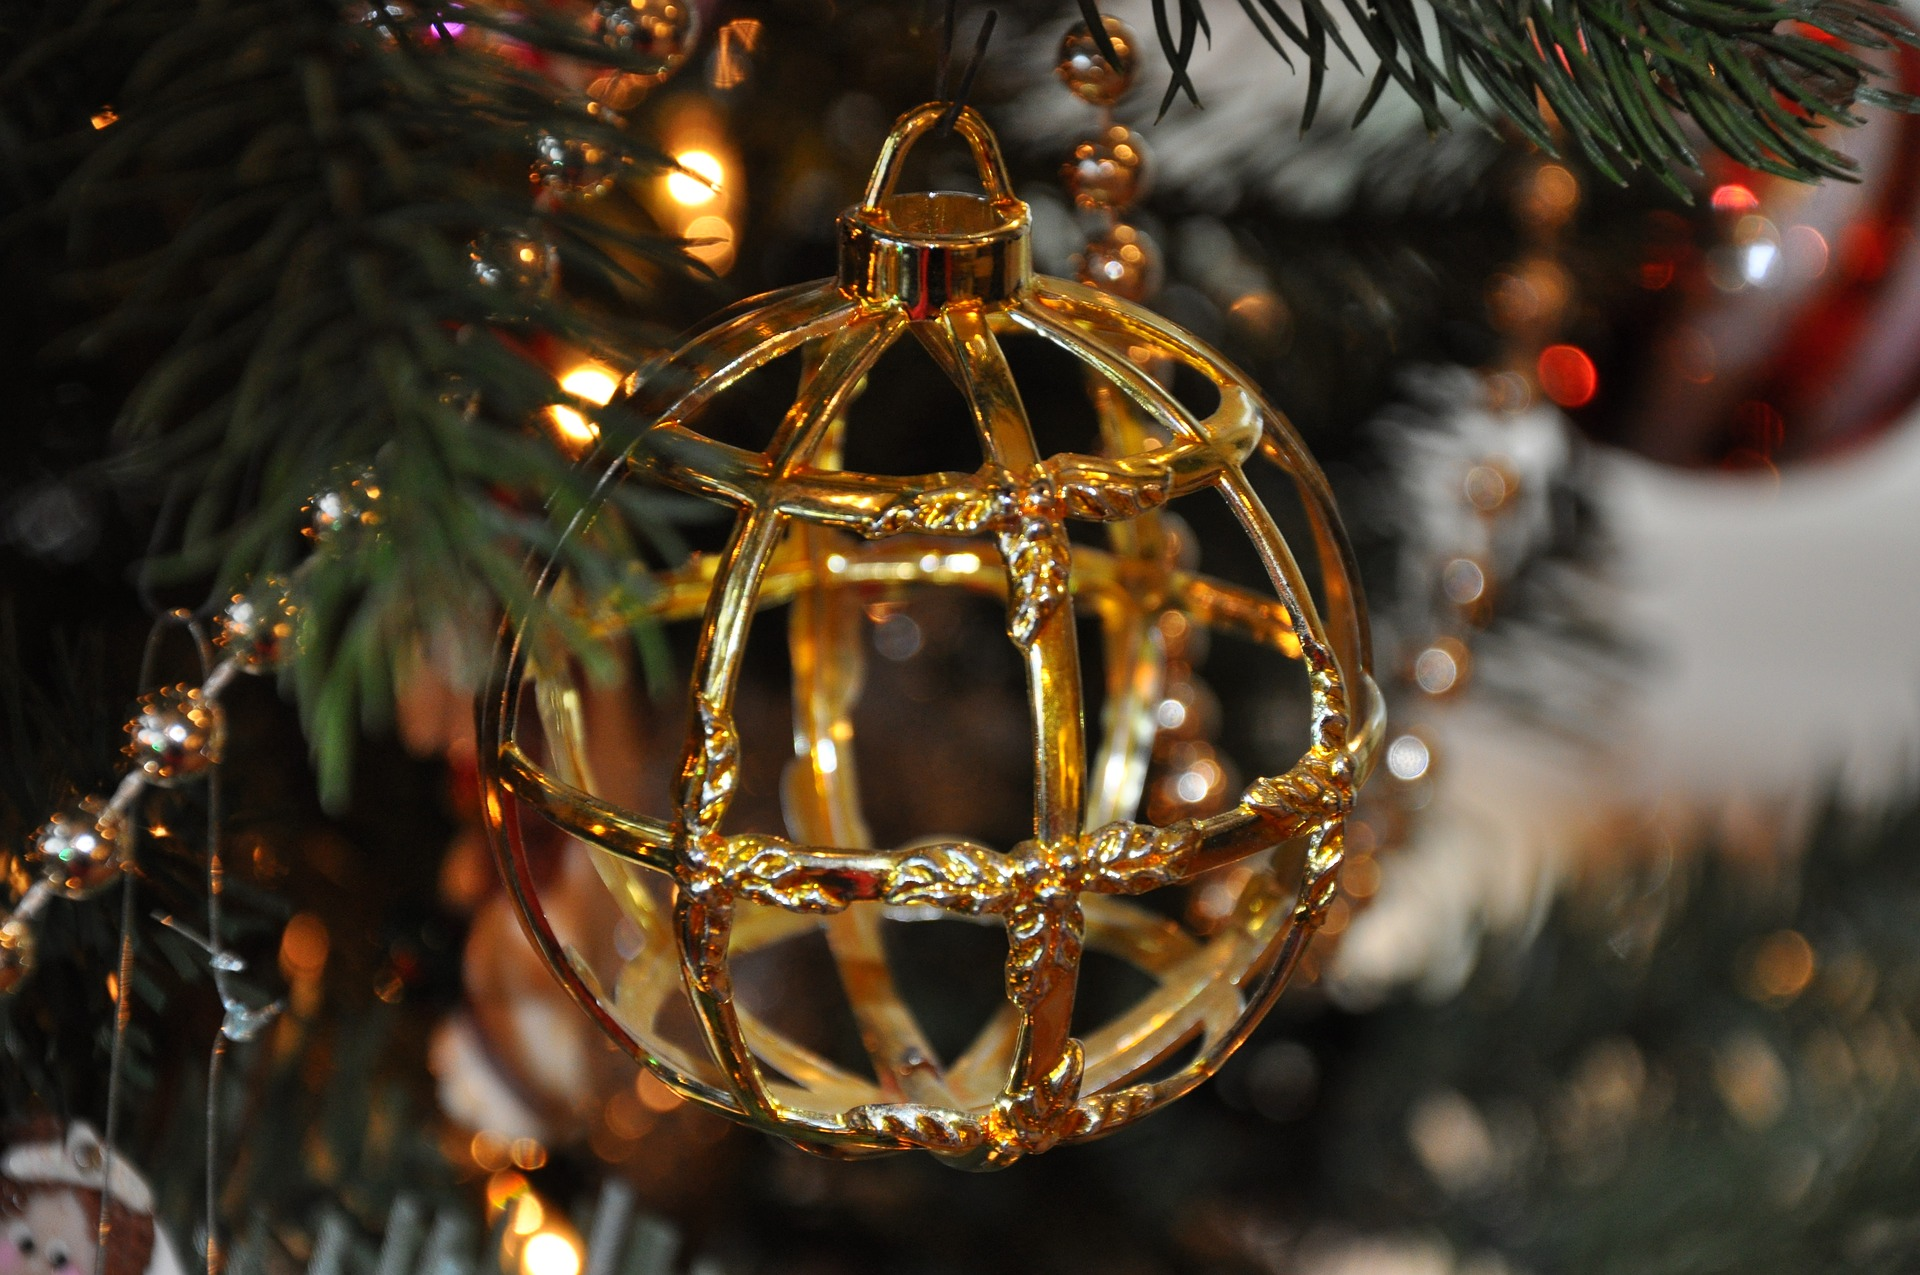 Old antique Christmas ornaments hanging on a Christmas tree.